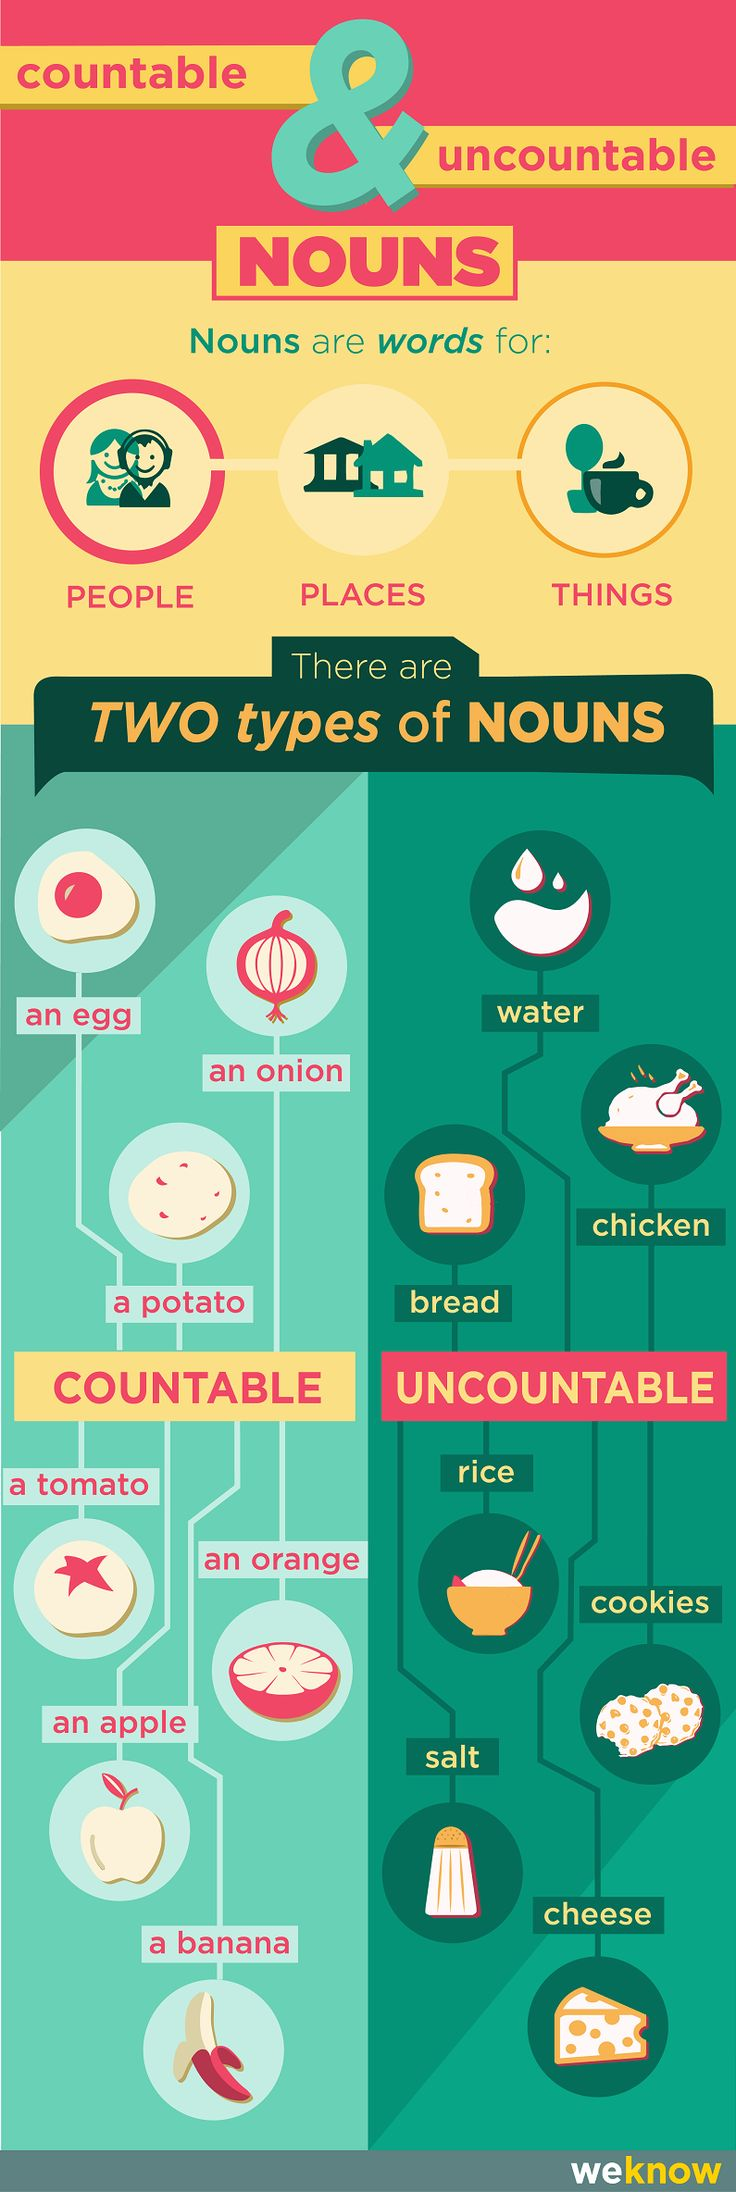 Countable and uncountable nouns                                                                                                                                                                                 Más